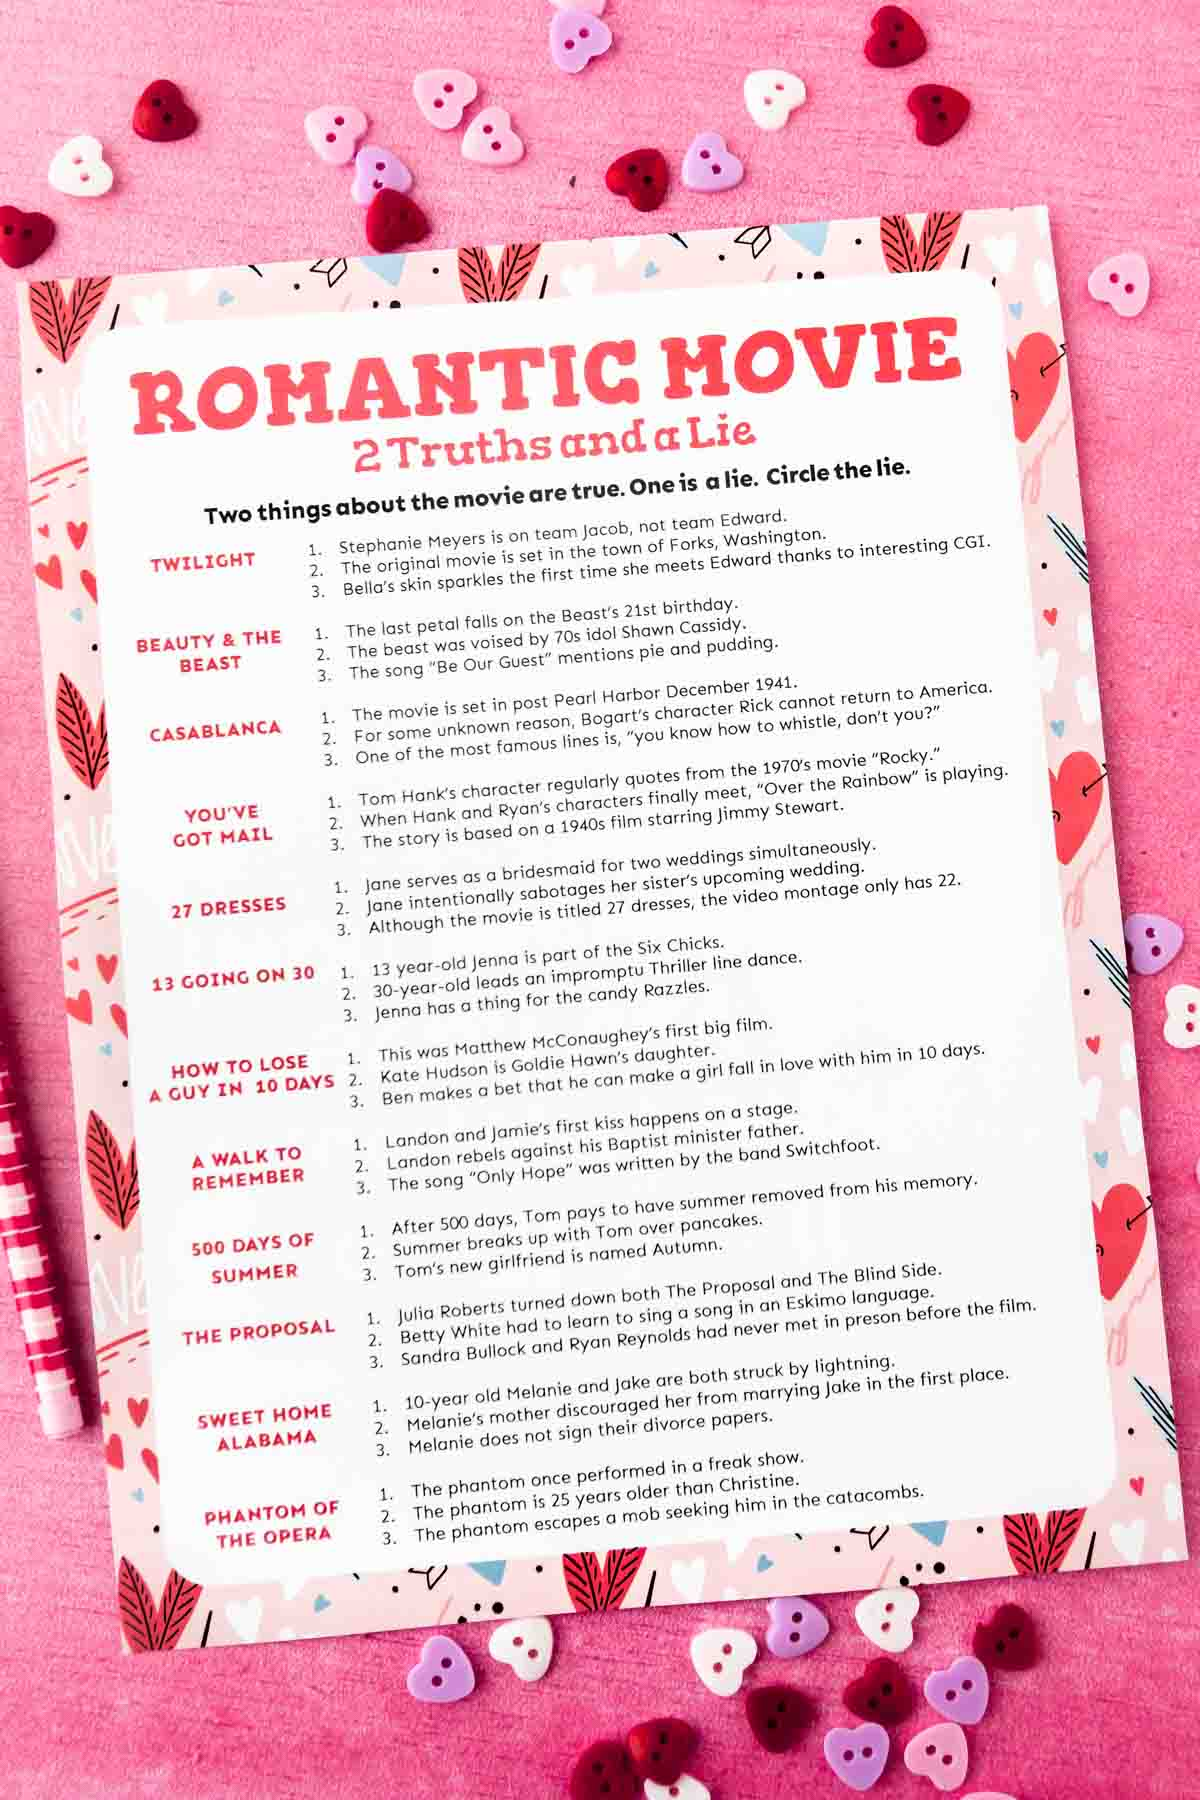 Printed out romantic two truths and a lie game